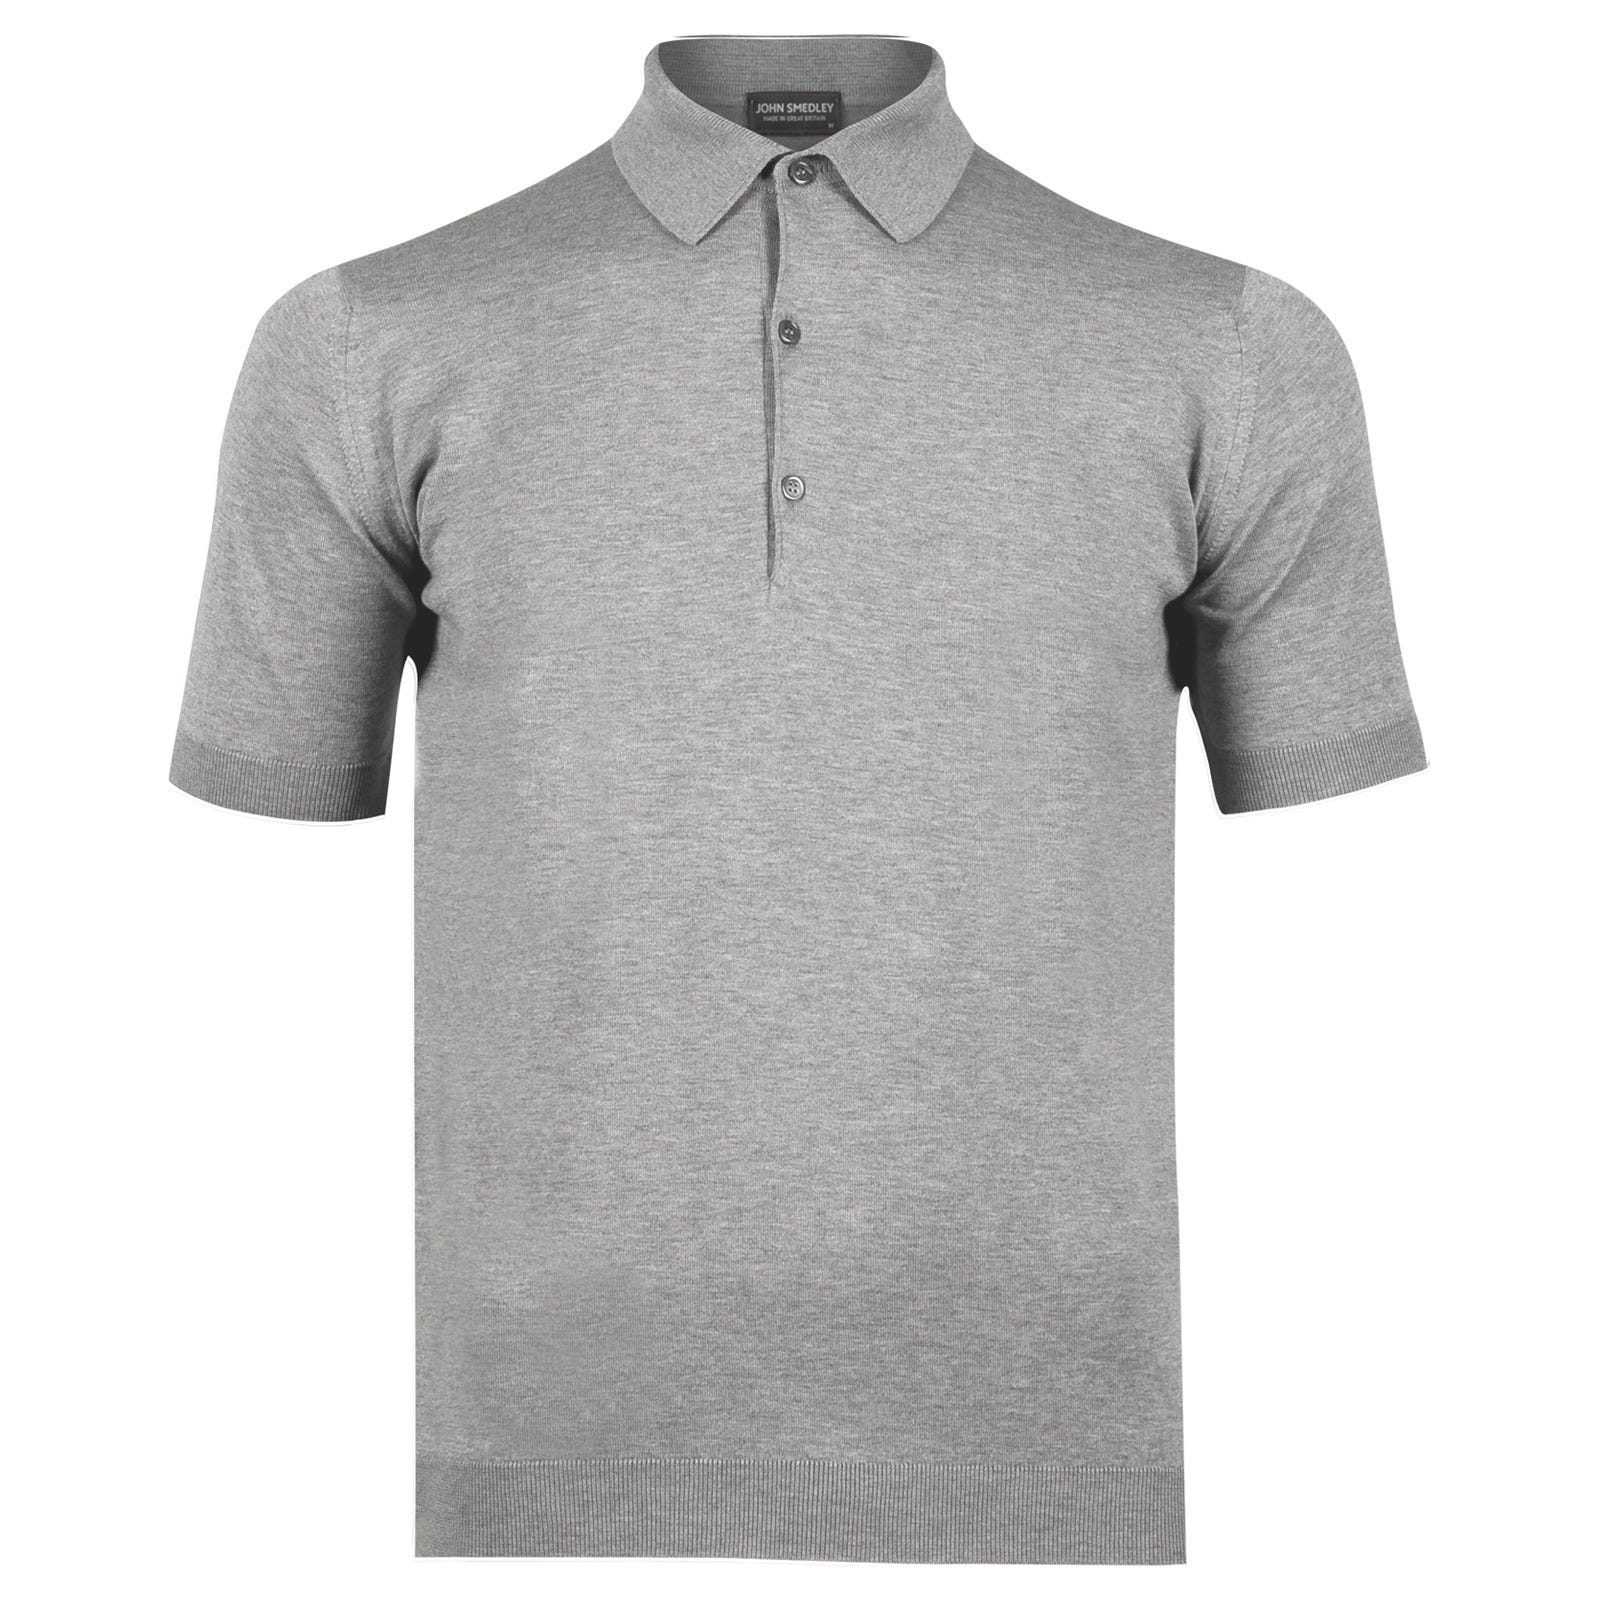 John Smedley adrian Sea Island Cotton Shirt in Silver-XL